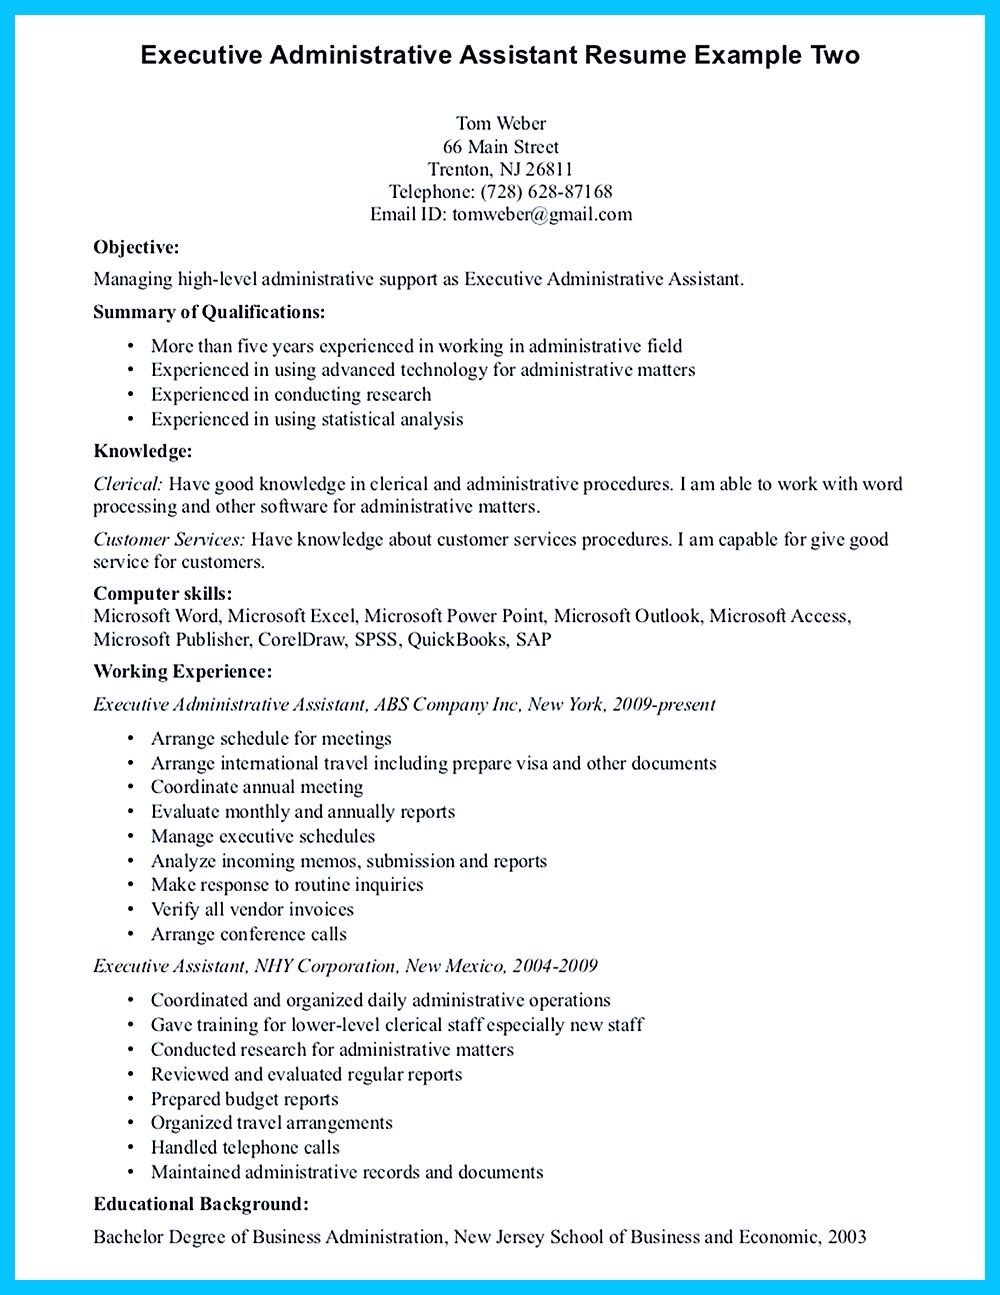 Administrative Assistant Resume Example In Writing Entry Level Administrative Assistant Resume You Need